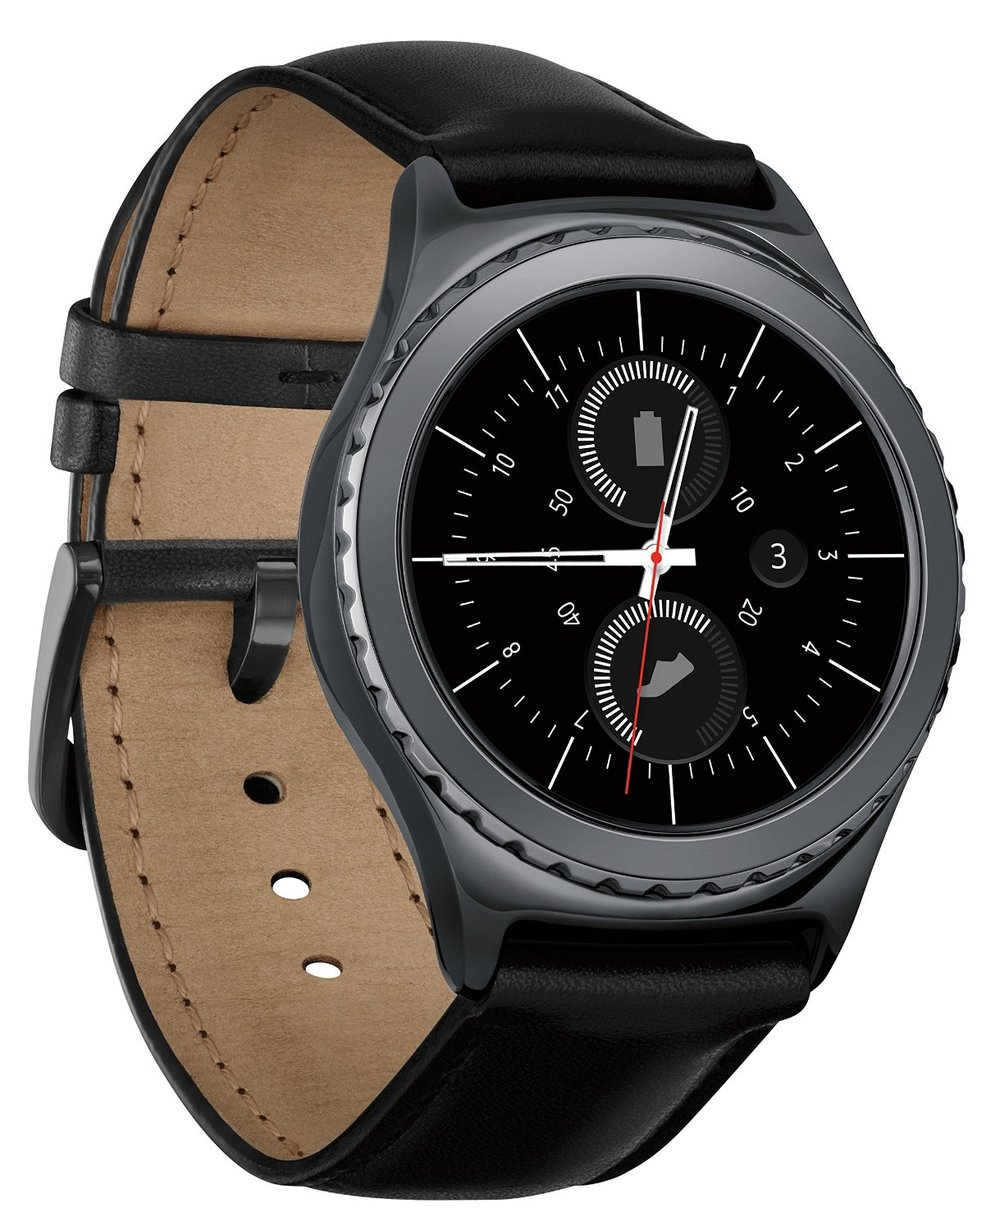 Samsung SM-R7320ZKAXAR Gear S2 Smartwatch for Most Android Phones - Classic